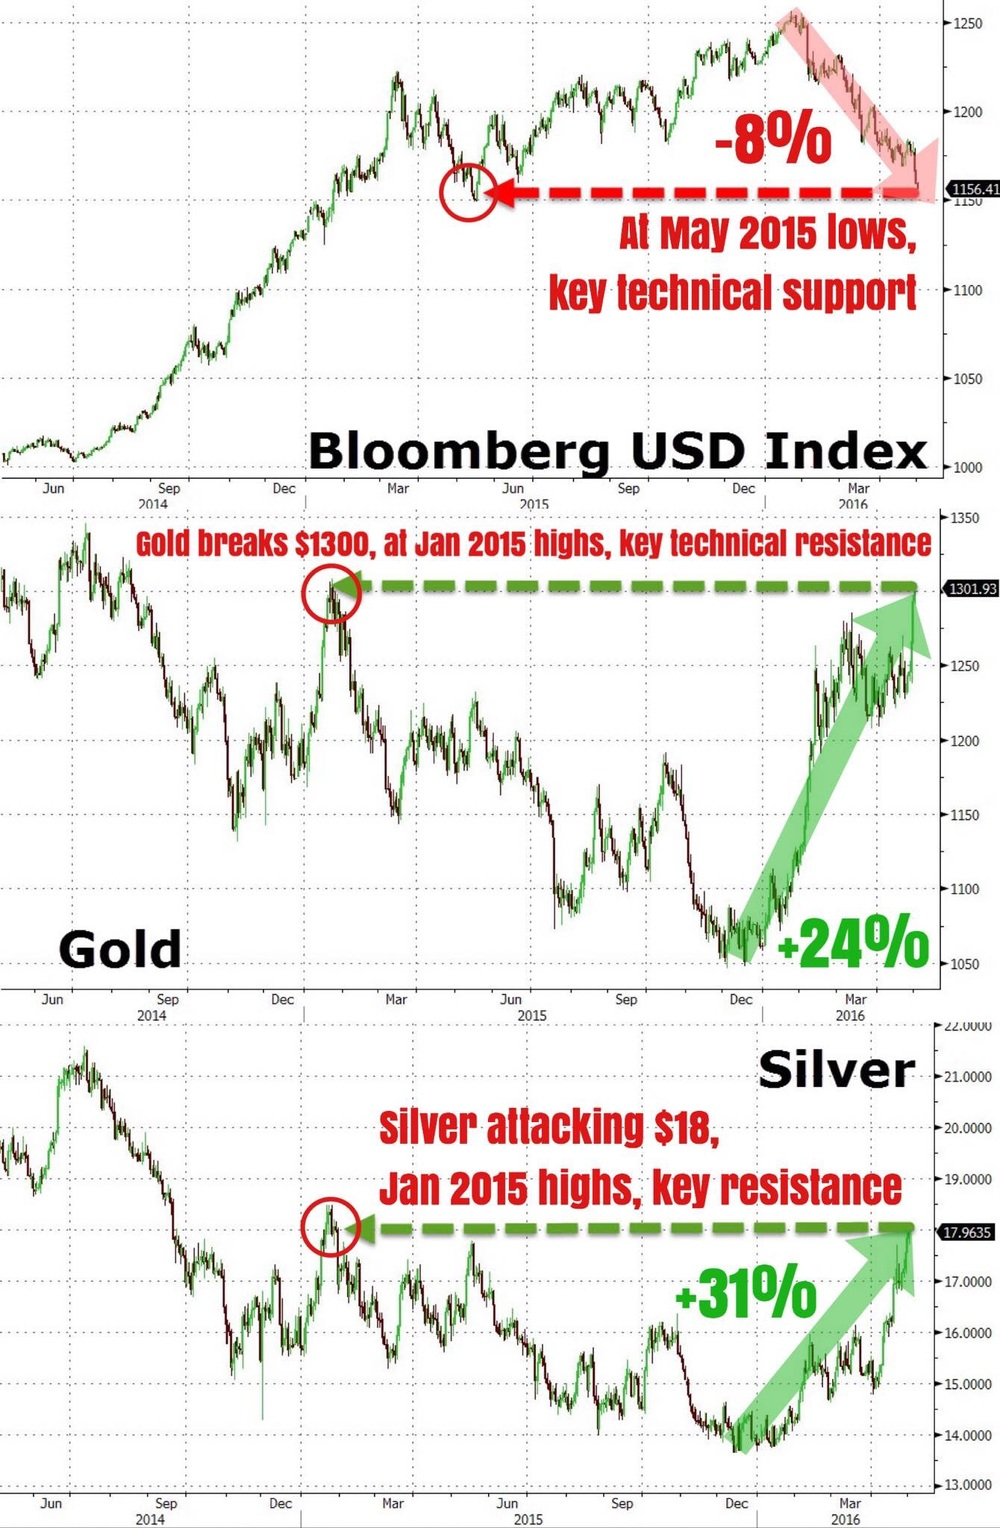 """While we have been writing extensively on the weakness of the U.S. dollar and resulting strength in commodities such as the precious metals (gold, silver, platinum), we can not give less of a damn when it comes to being realistic. Now is the time to be realistic, we feel.    Just on the technical side of the market (price action and market structure), the DXY (U.S. Dollar Index) is currently at its May 2015 lows which is a key technical support area. Gold and silver are conversely at their January 2015 highs which are both key technical resistance areas. Gold managed to trade briefly above the key psychological big figure of $1300.    Since their respective inflection points, the DXY is down -8%, gold up +24%, and silver +31%. These are some seriously big numbers that were talking about. 8% is a huge deal for a currency index, for the lesser learned of you.    We also note that positioning data indicates that large speculators (momentum chasers) are heavily long gold and silver, and have turned net short the DXY for the first time since 2012 (the most short USD in more than 3 years)...    We aren't bearish the precious metals or bullish the USD. In fact, if you've been following us, we have been advocating long exposures in the precious metals complex since early February, and have been shorting the USD since around the same time.    This is merely a heads up to traders and opportunistic folks, if you get what we mean. Trade accordingly...""    Business Of Finance on Facebook, 2 May 2016"